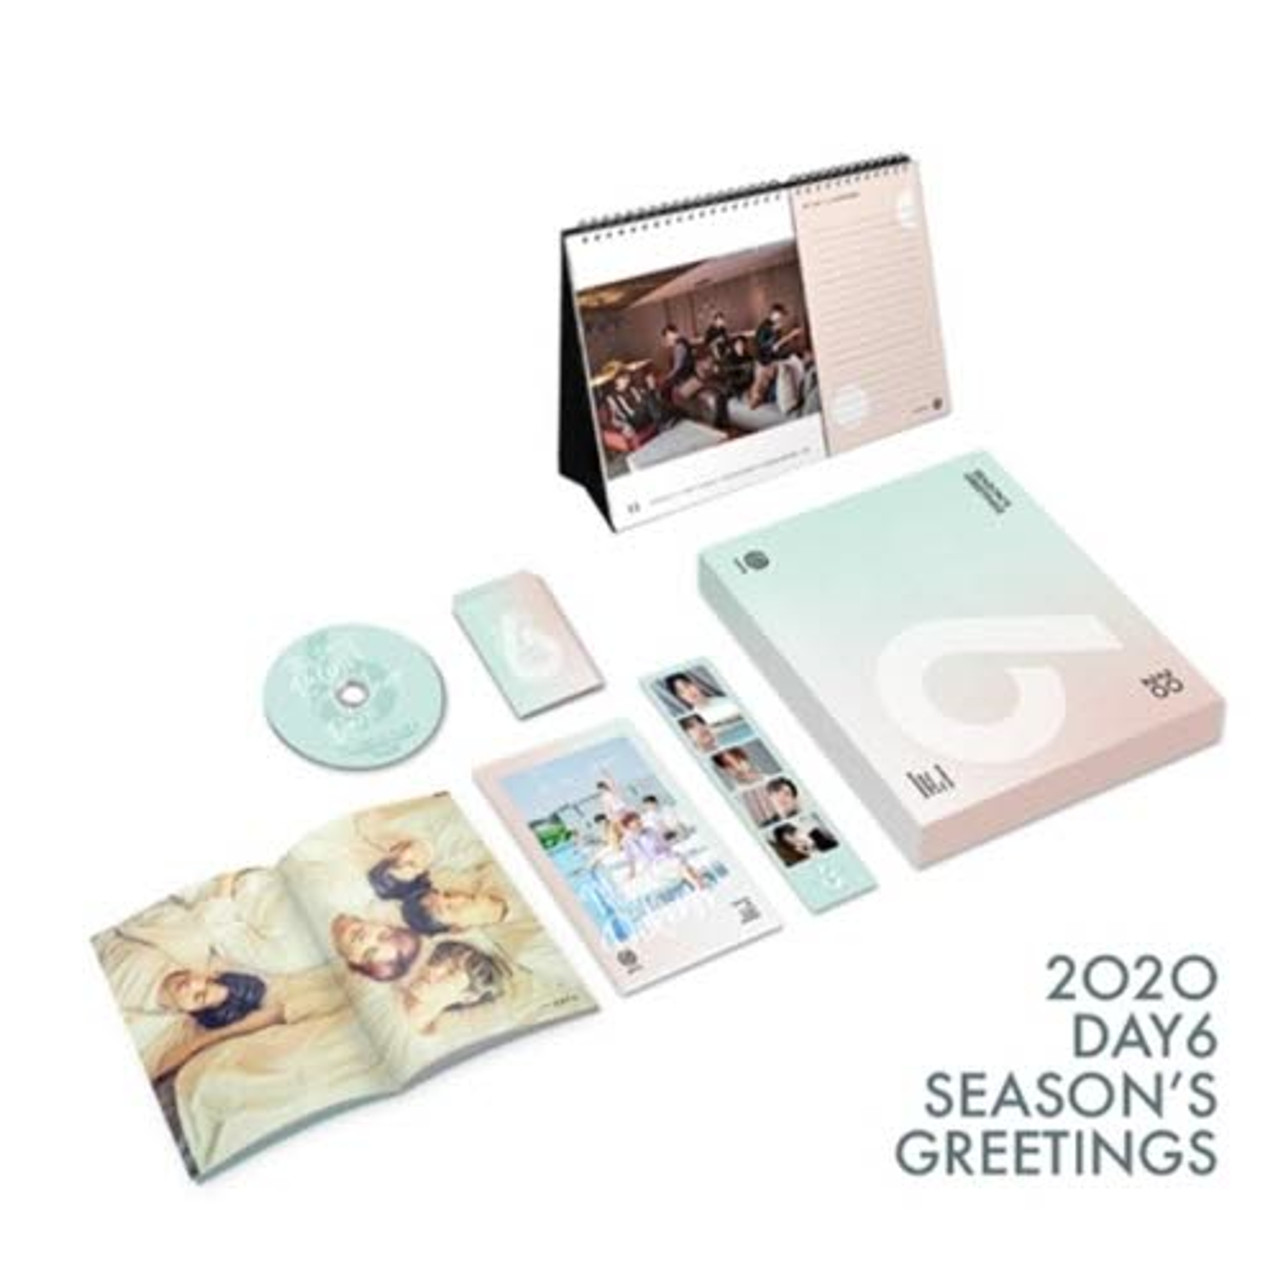 DAY6 - 2020 SEASONS GREETINGS